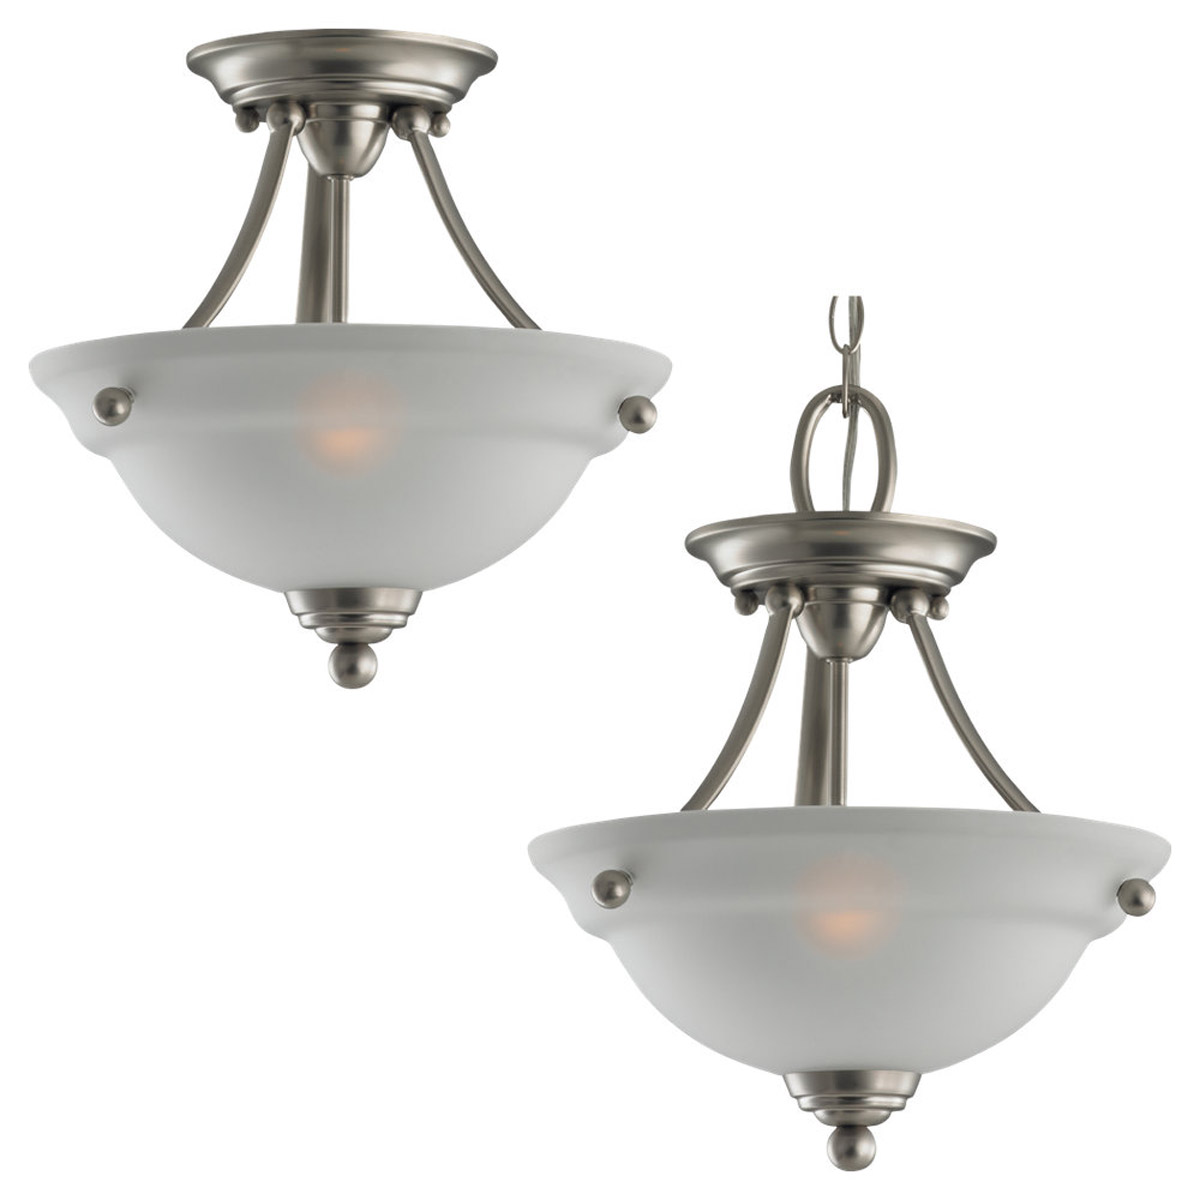 Sea Gull Lighting Wheaton 2 Light Semi-Flush Mount in Brushed Nickel 77625-962 photo